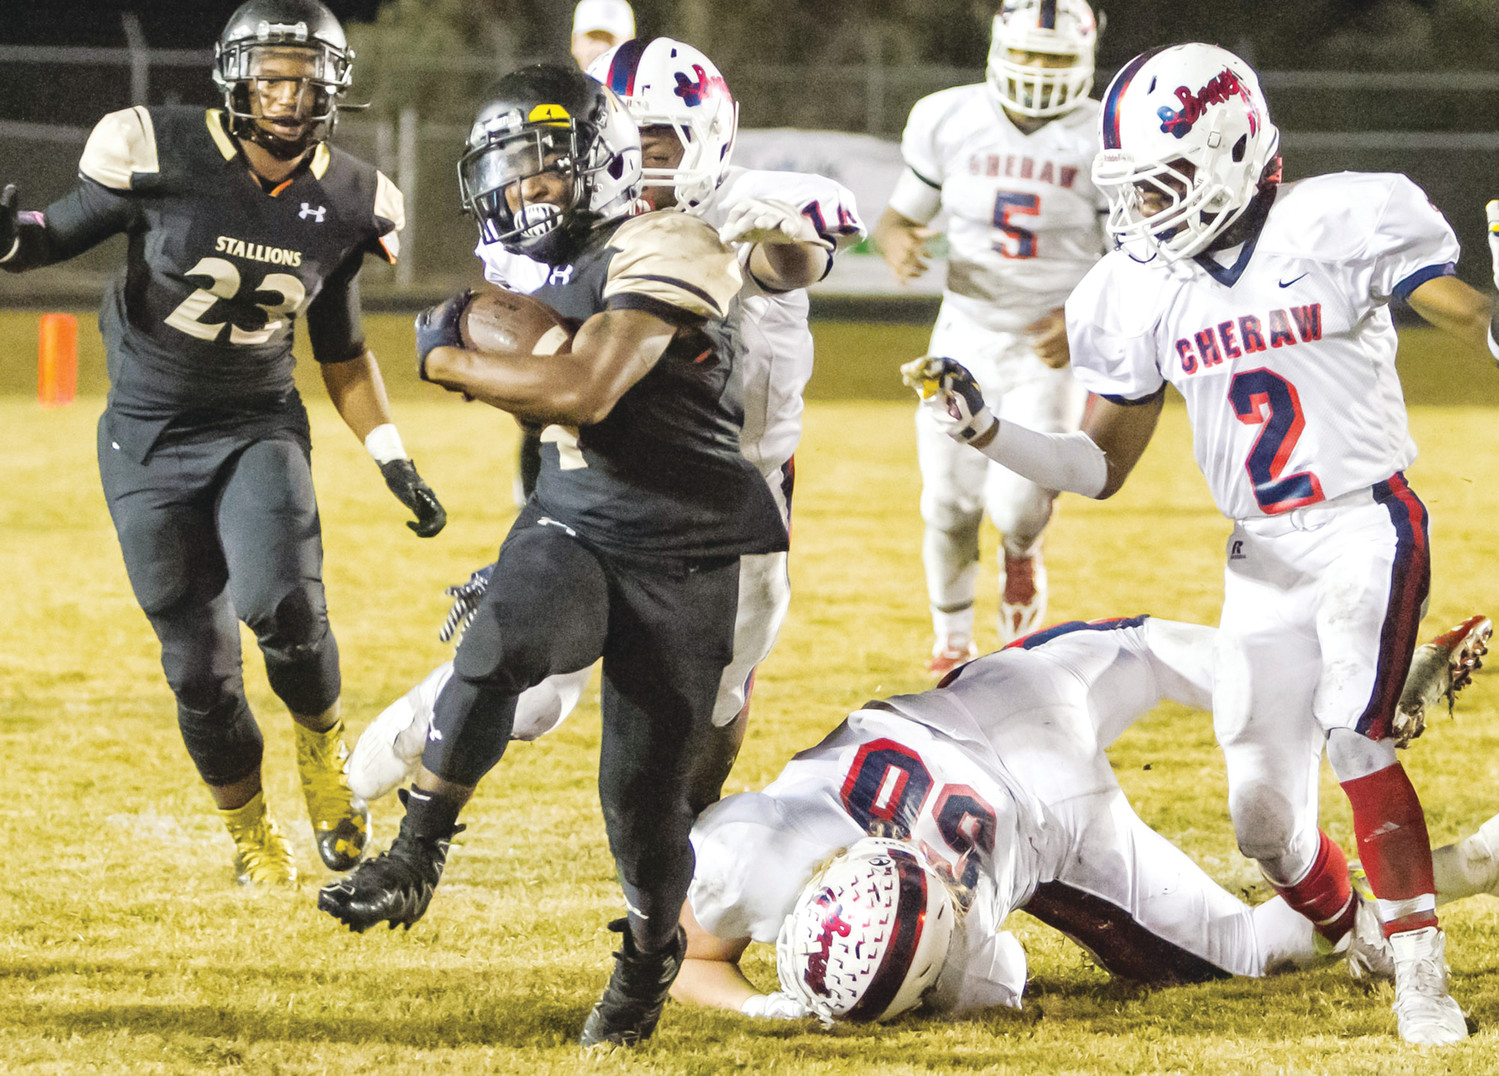 SUMTER ITEM FILE PHOTOLee Central running back Demetrius DuBose (4) will be signing to play college football with South Carolina State on Wednesday along with defensive lineman teammate Deontae Lowery and Crestwood defensive lineman Christopher Simon.